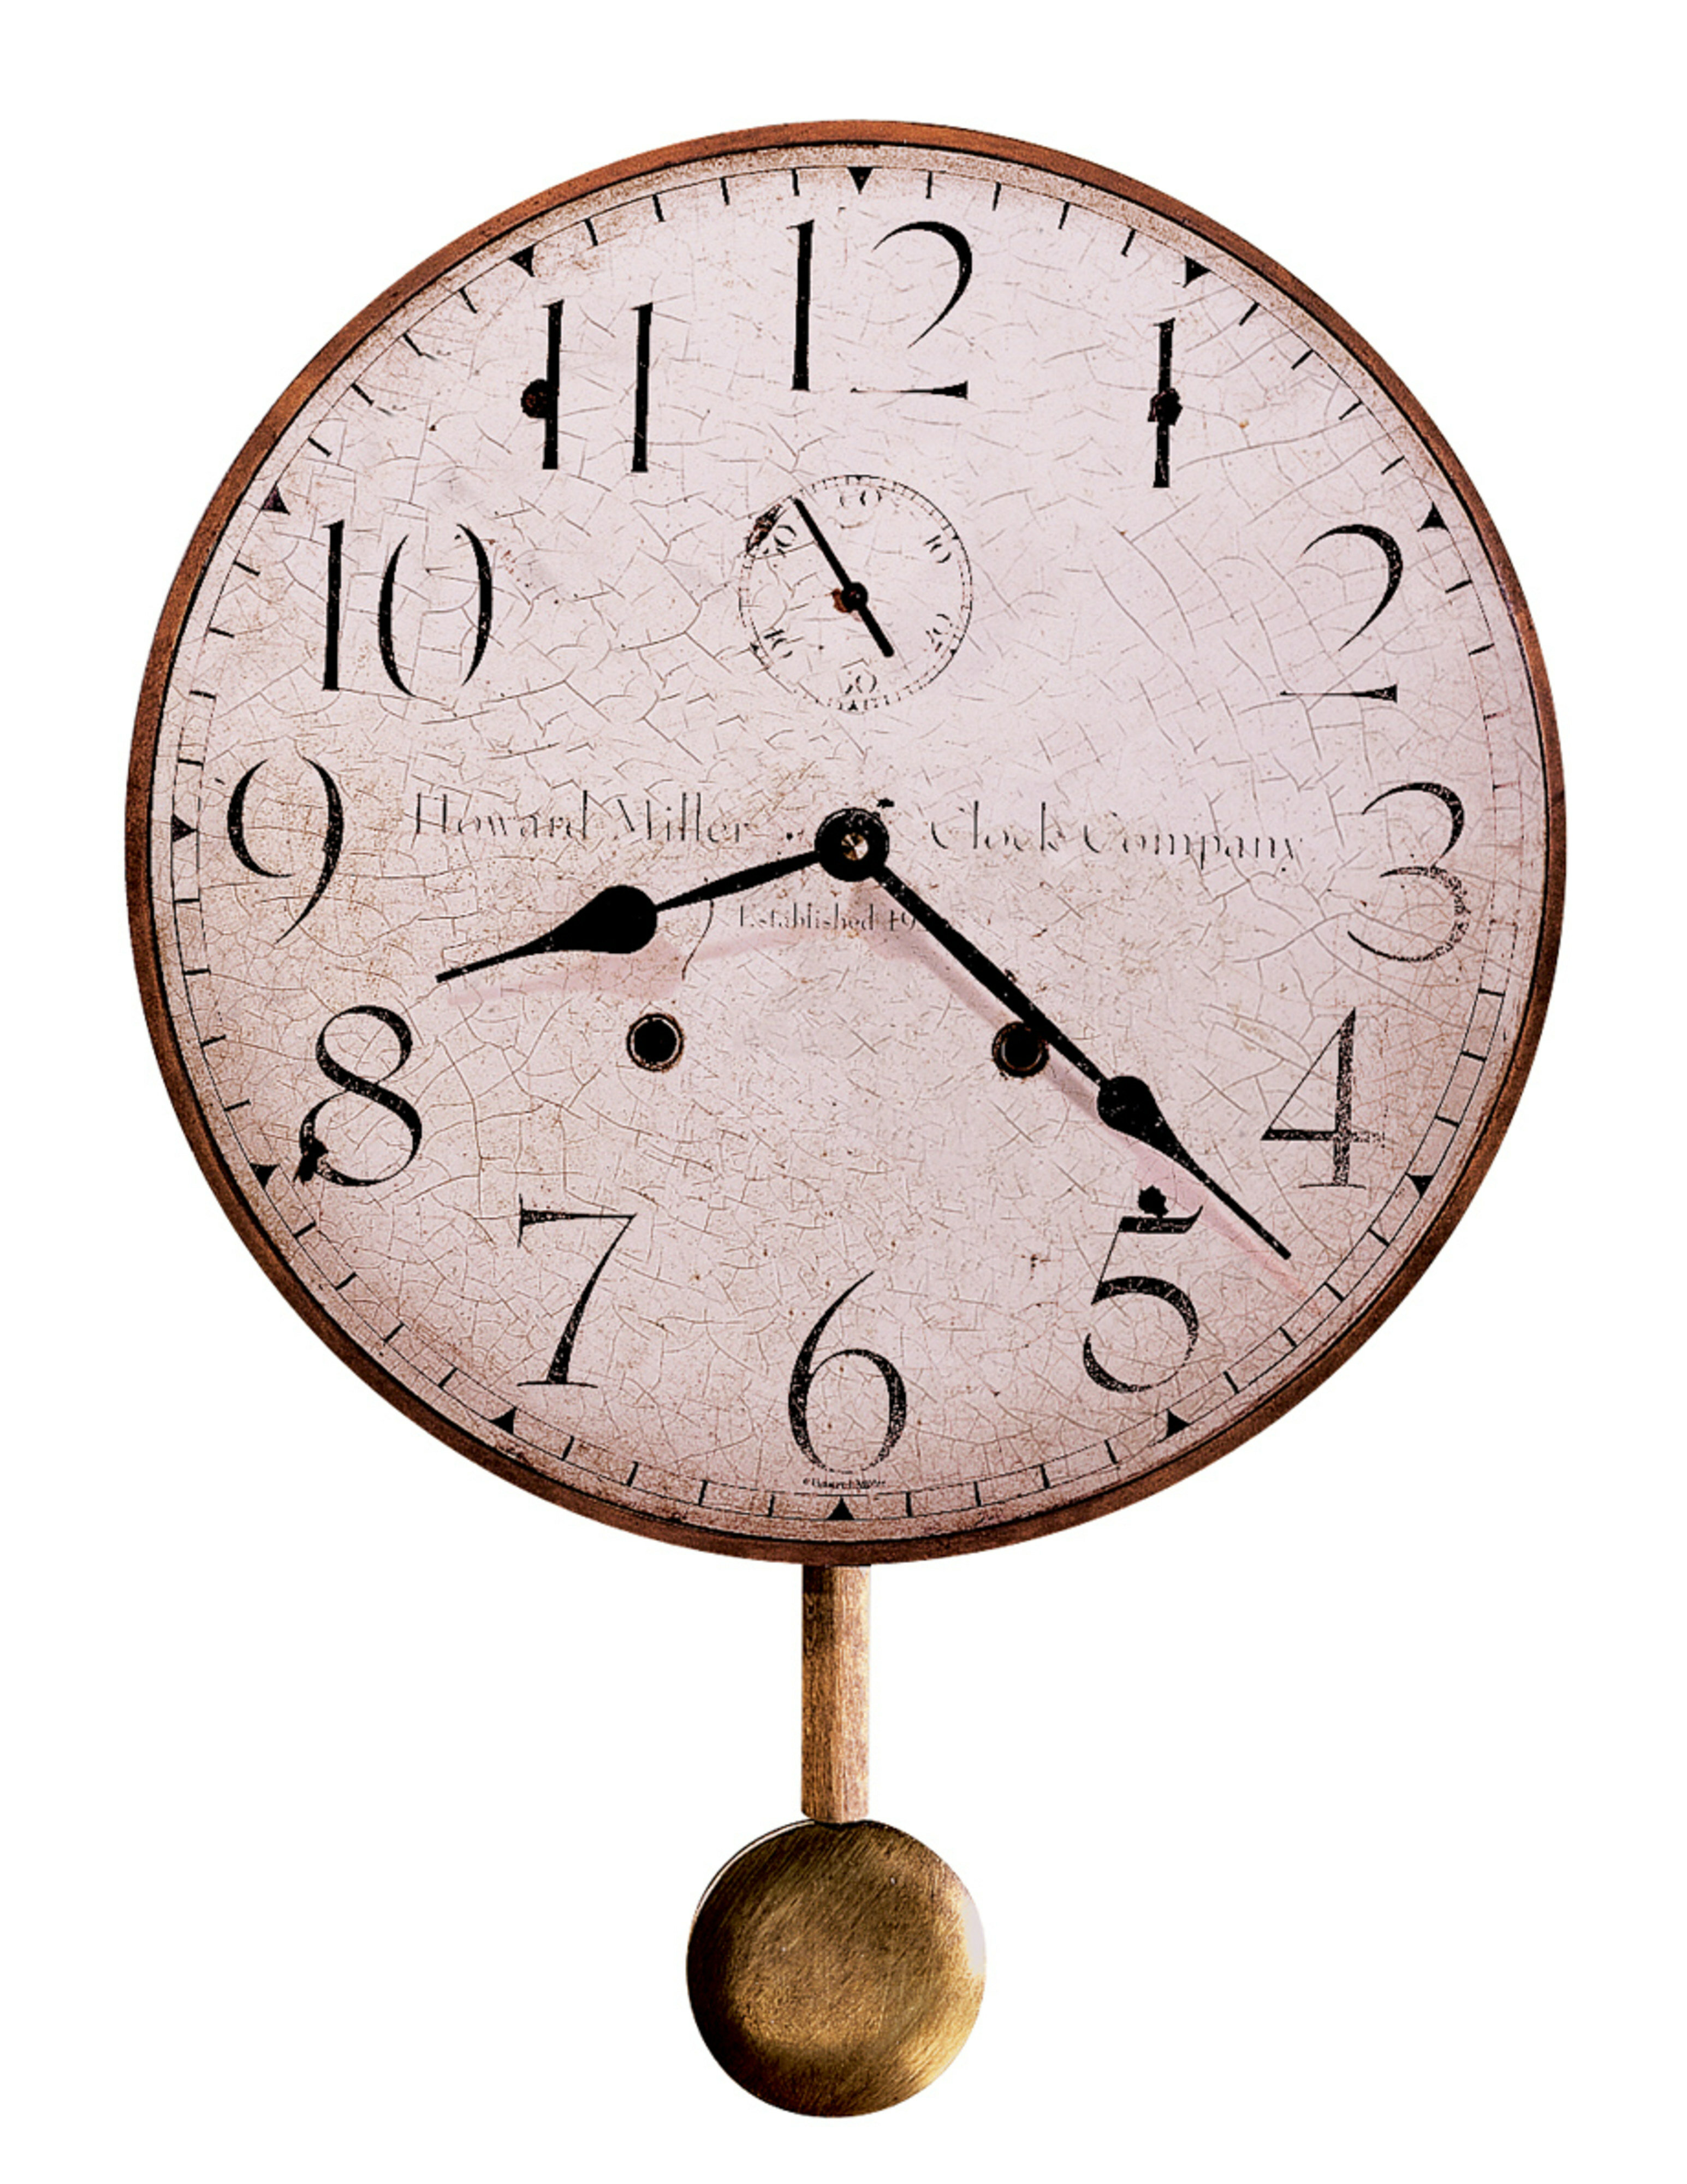 Clocks Collectibles Provided Howard Miller Art Deco Shelf Clock To Win A High Admiration